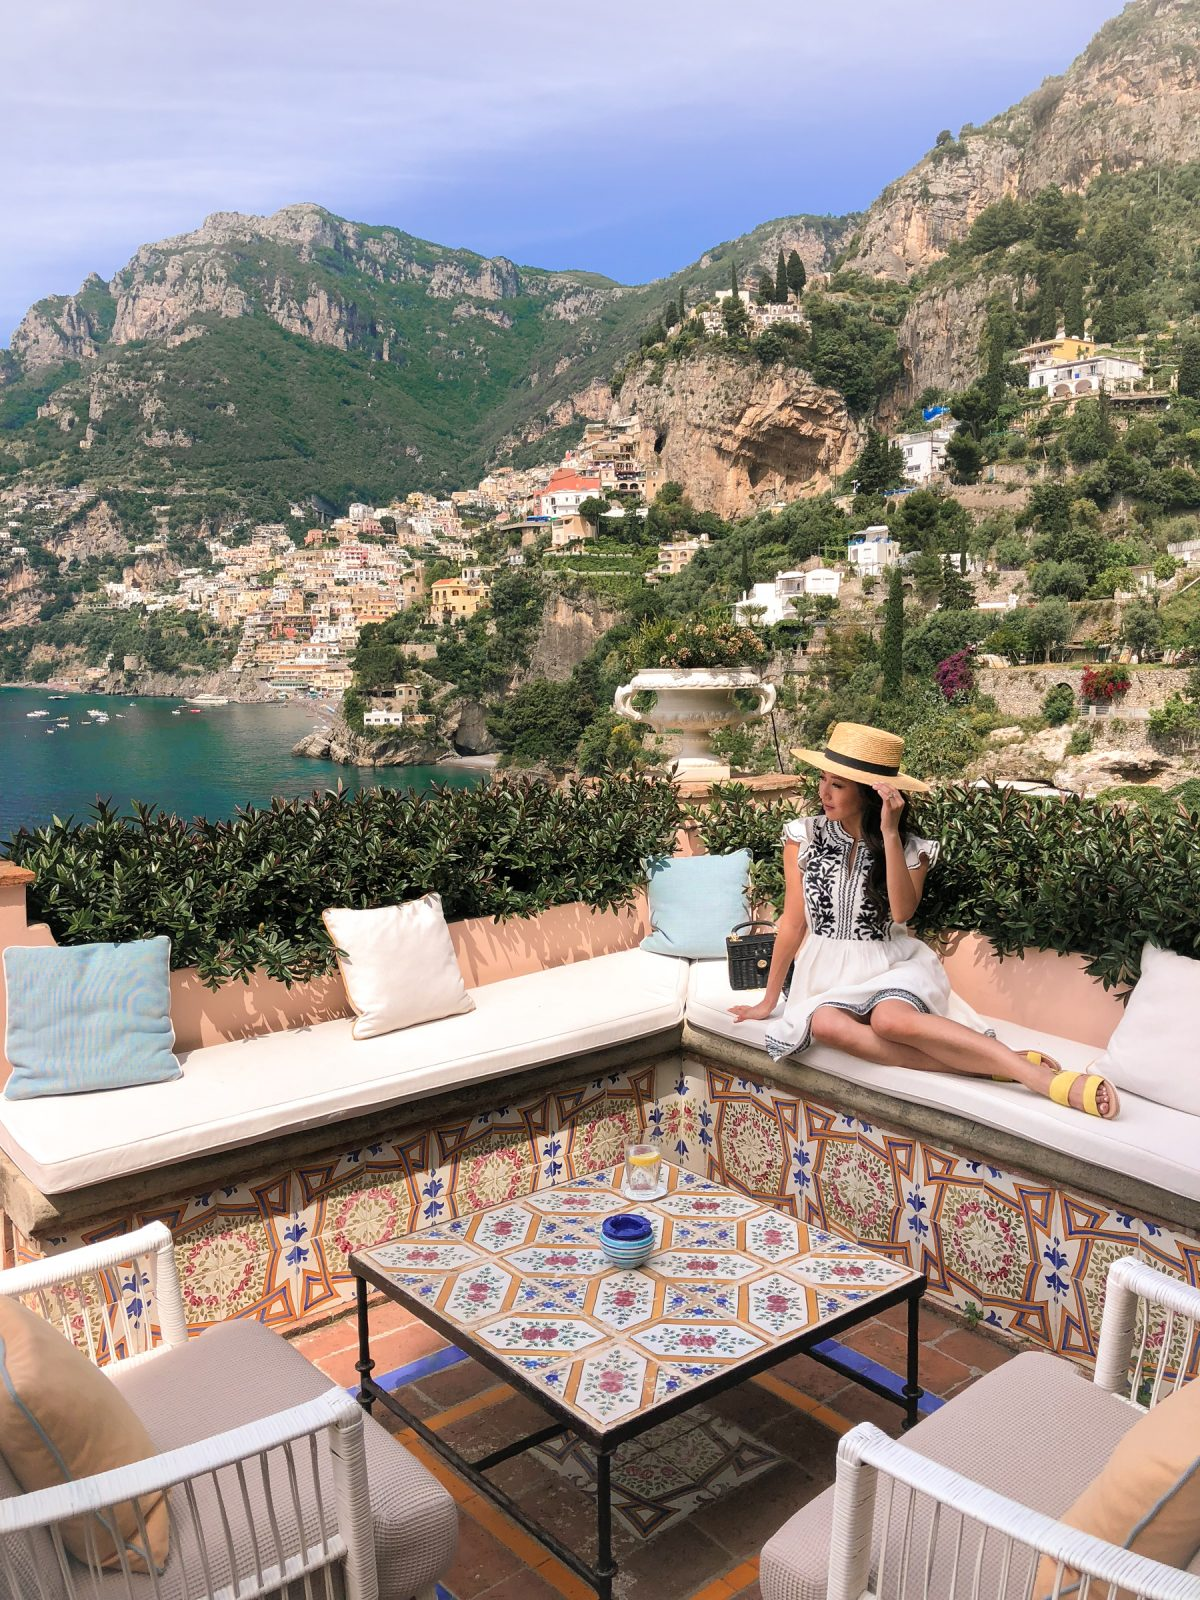 villa treville positano 5 star luxury hotel views